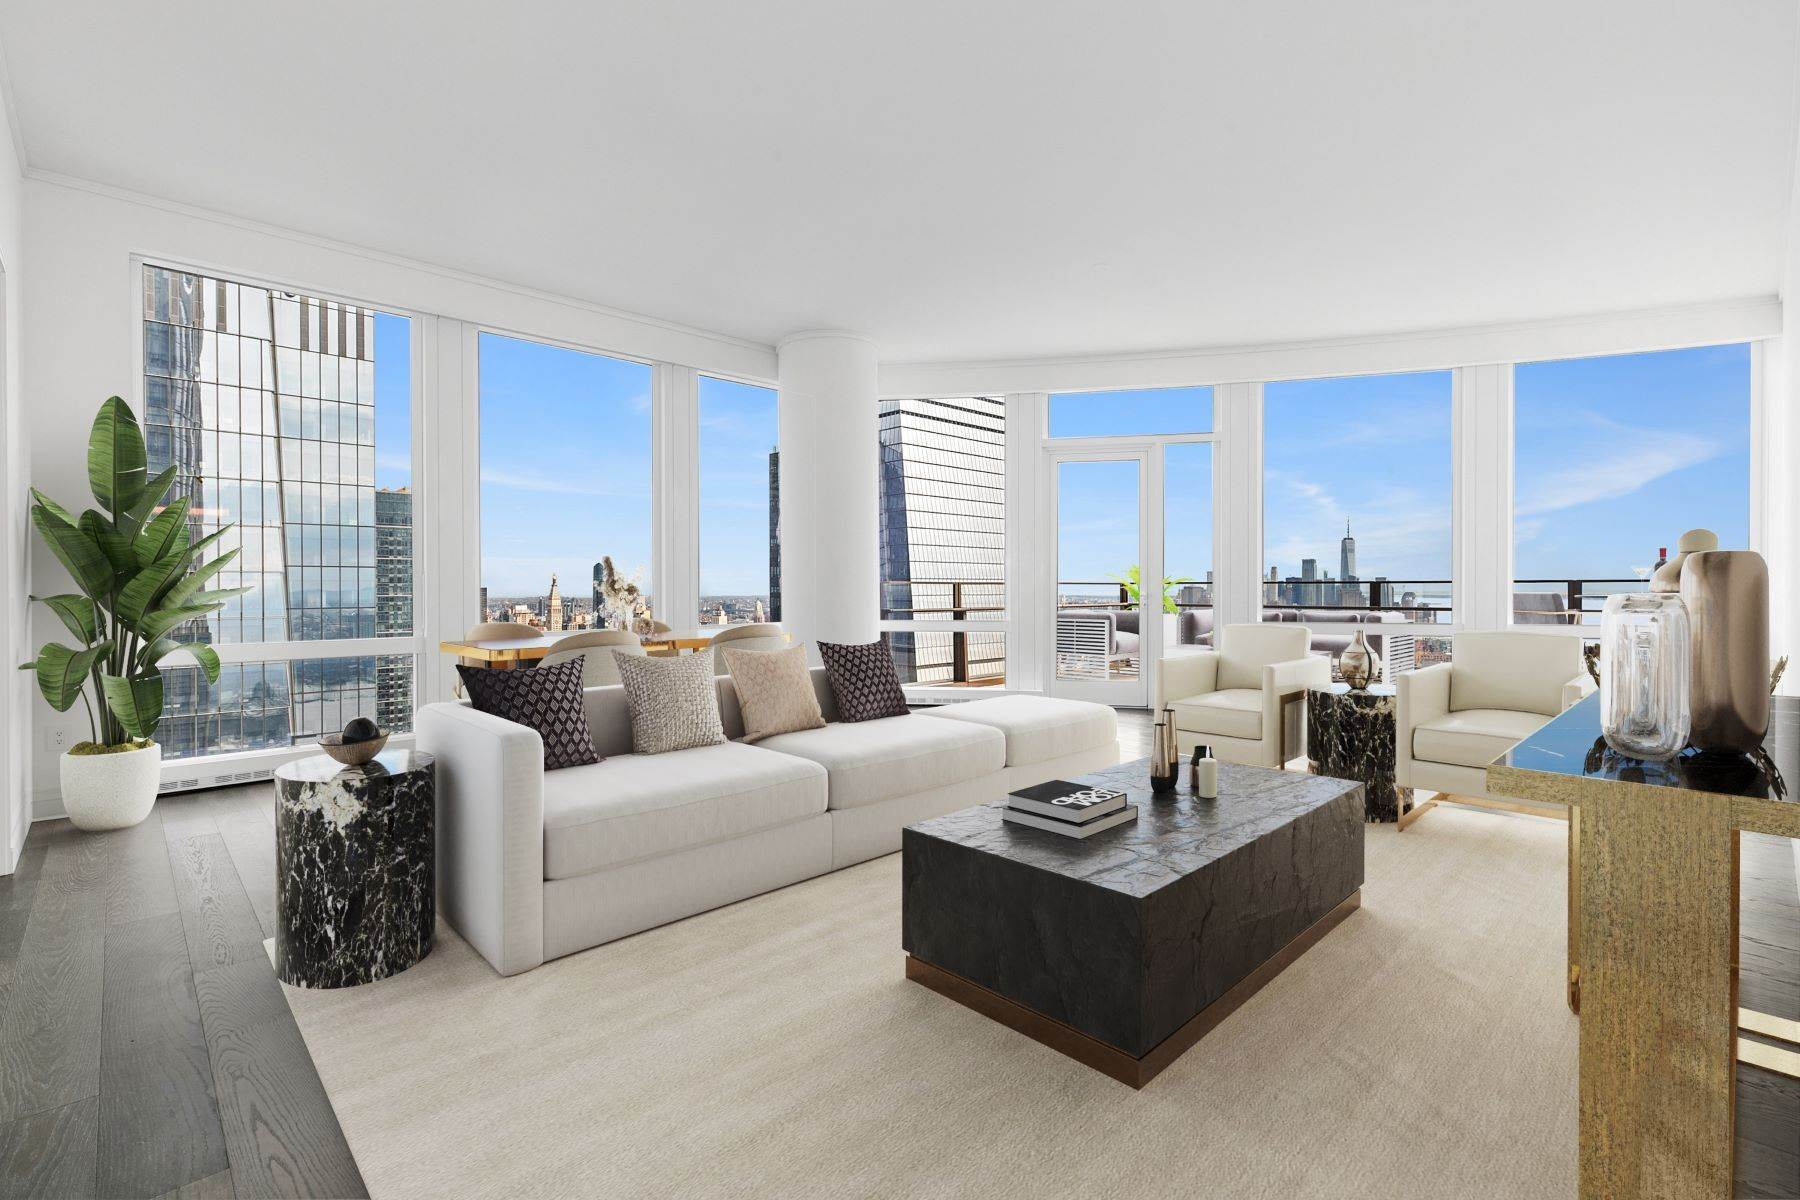 Condominiums om Spectacular Home & Private Terrace 35 Hudson Yards, Apt 6304, New York, New York 10001 Verenigde Staten